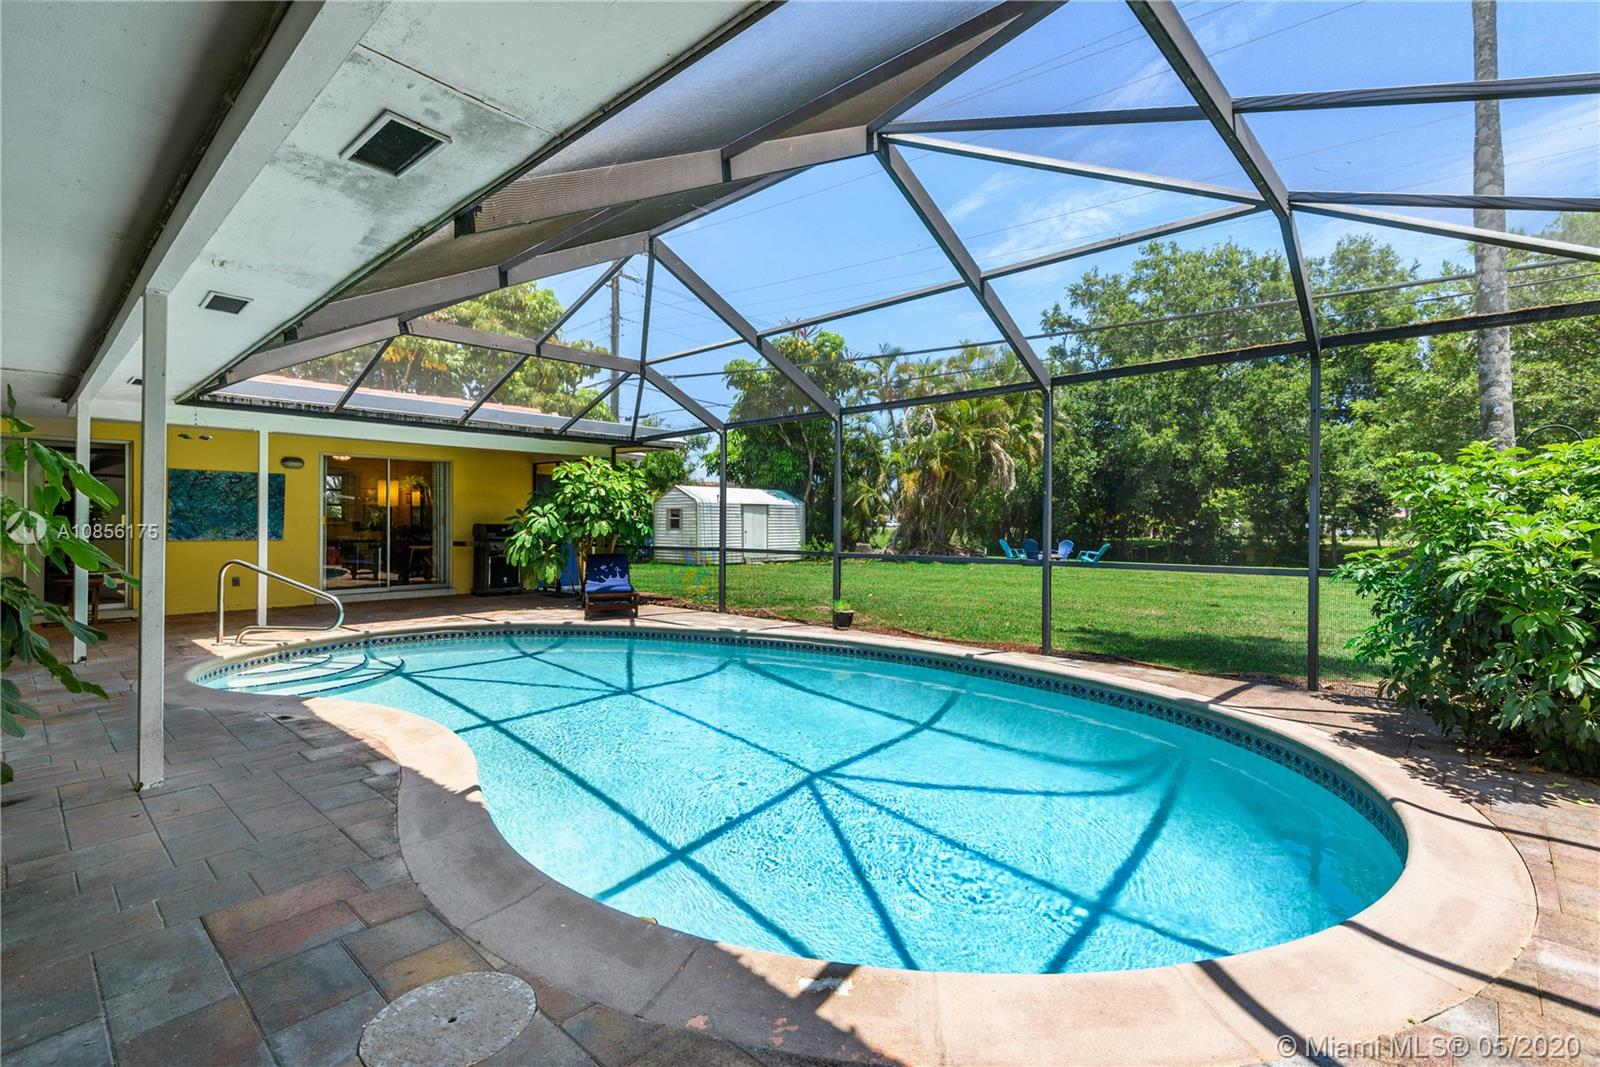 Do not miss this EXCELLENT OPPORTUNITY to own a charming 3/BR,2/BA, pool home in DESIRABLE Plantation. On appr. 13,000 square feet, this property boasts a screened-in covered paved patio & pool overlooking a spacious backyard w/lush lawn to a canal. Features a bright kitchen w/stone countertops & sliders leading out to the patio. VAULTED CEILING w/WOOD BEAMS in LR, light wood laminate flooring, & sliders w/views of pool & yard. Terrazzo flooring & SPLIT BEDROOM FLOORPLAN w/master suite & cabana bathroom. Access the patio from any room in the house. Long driveway & 2-car carport. There is AMPLE STORAGE including a utility/Laundry/storage room, plus storage room off the back of the house & an OVERSIZED SHED in the yard. Near schools, restaurants, highways, & more. NO HOA. Bring all offers.